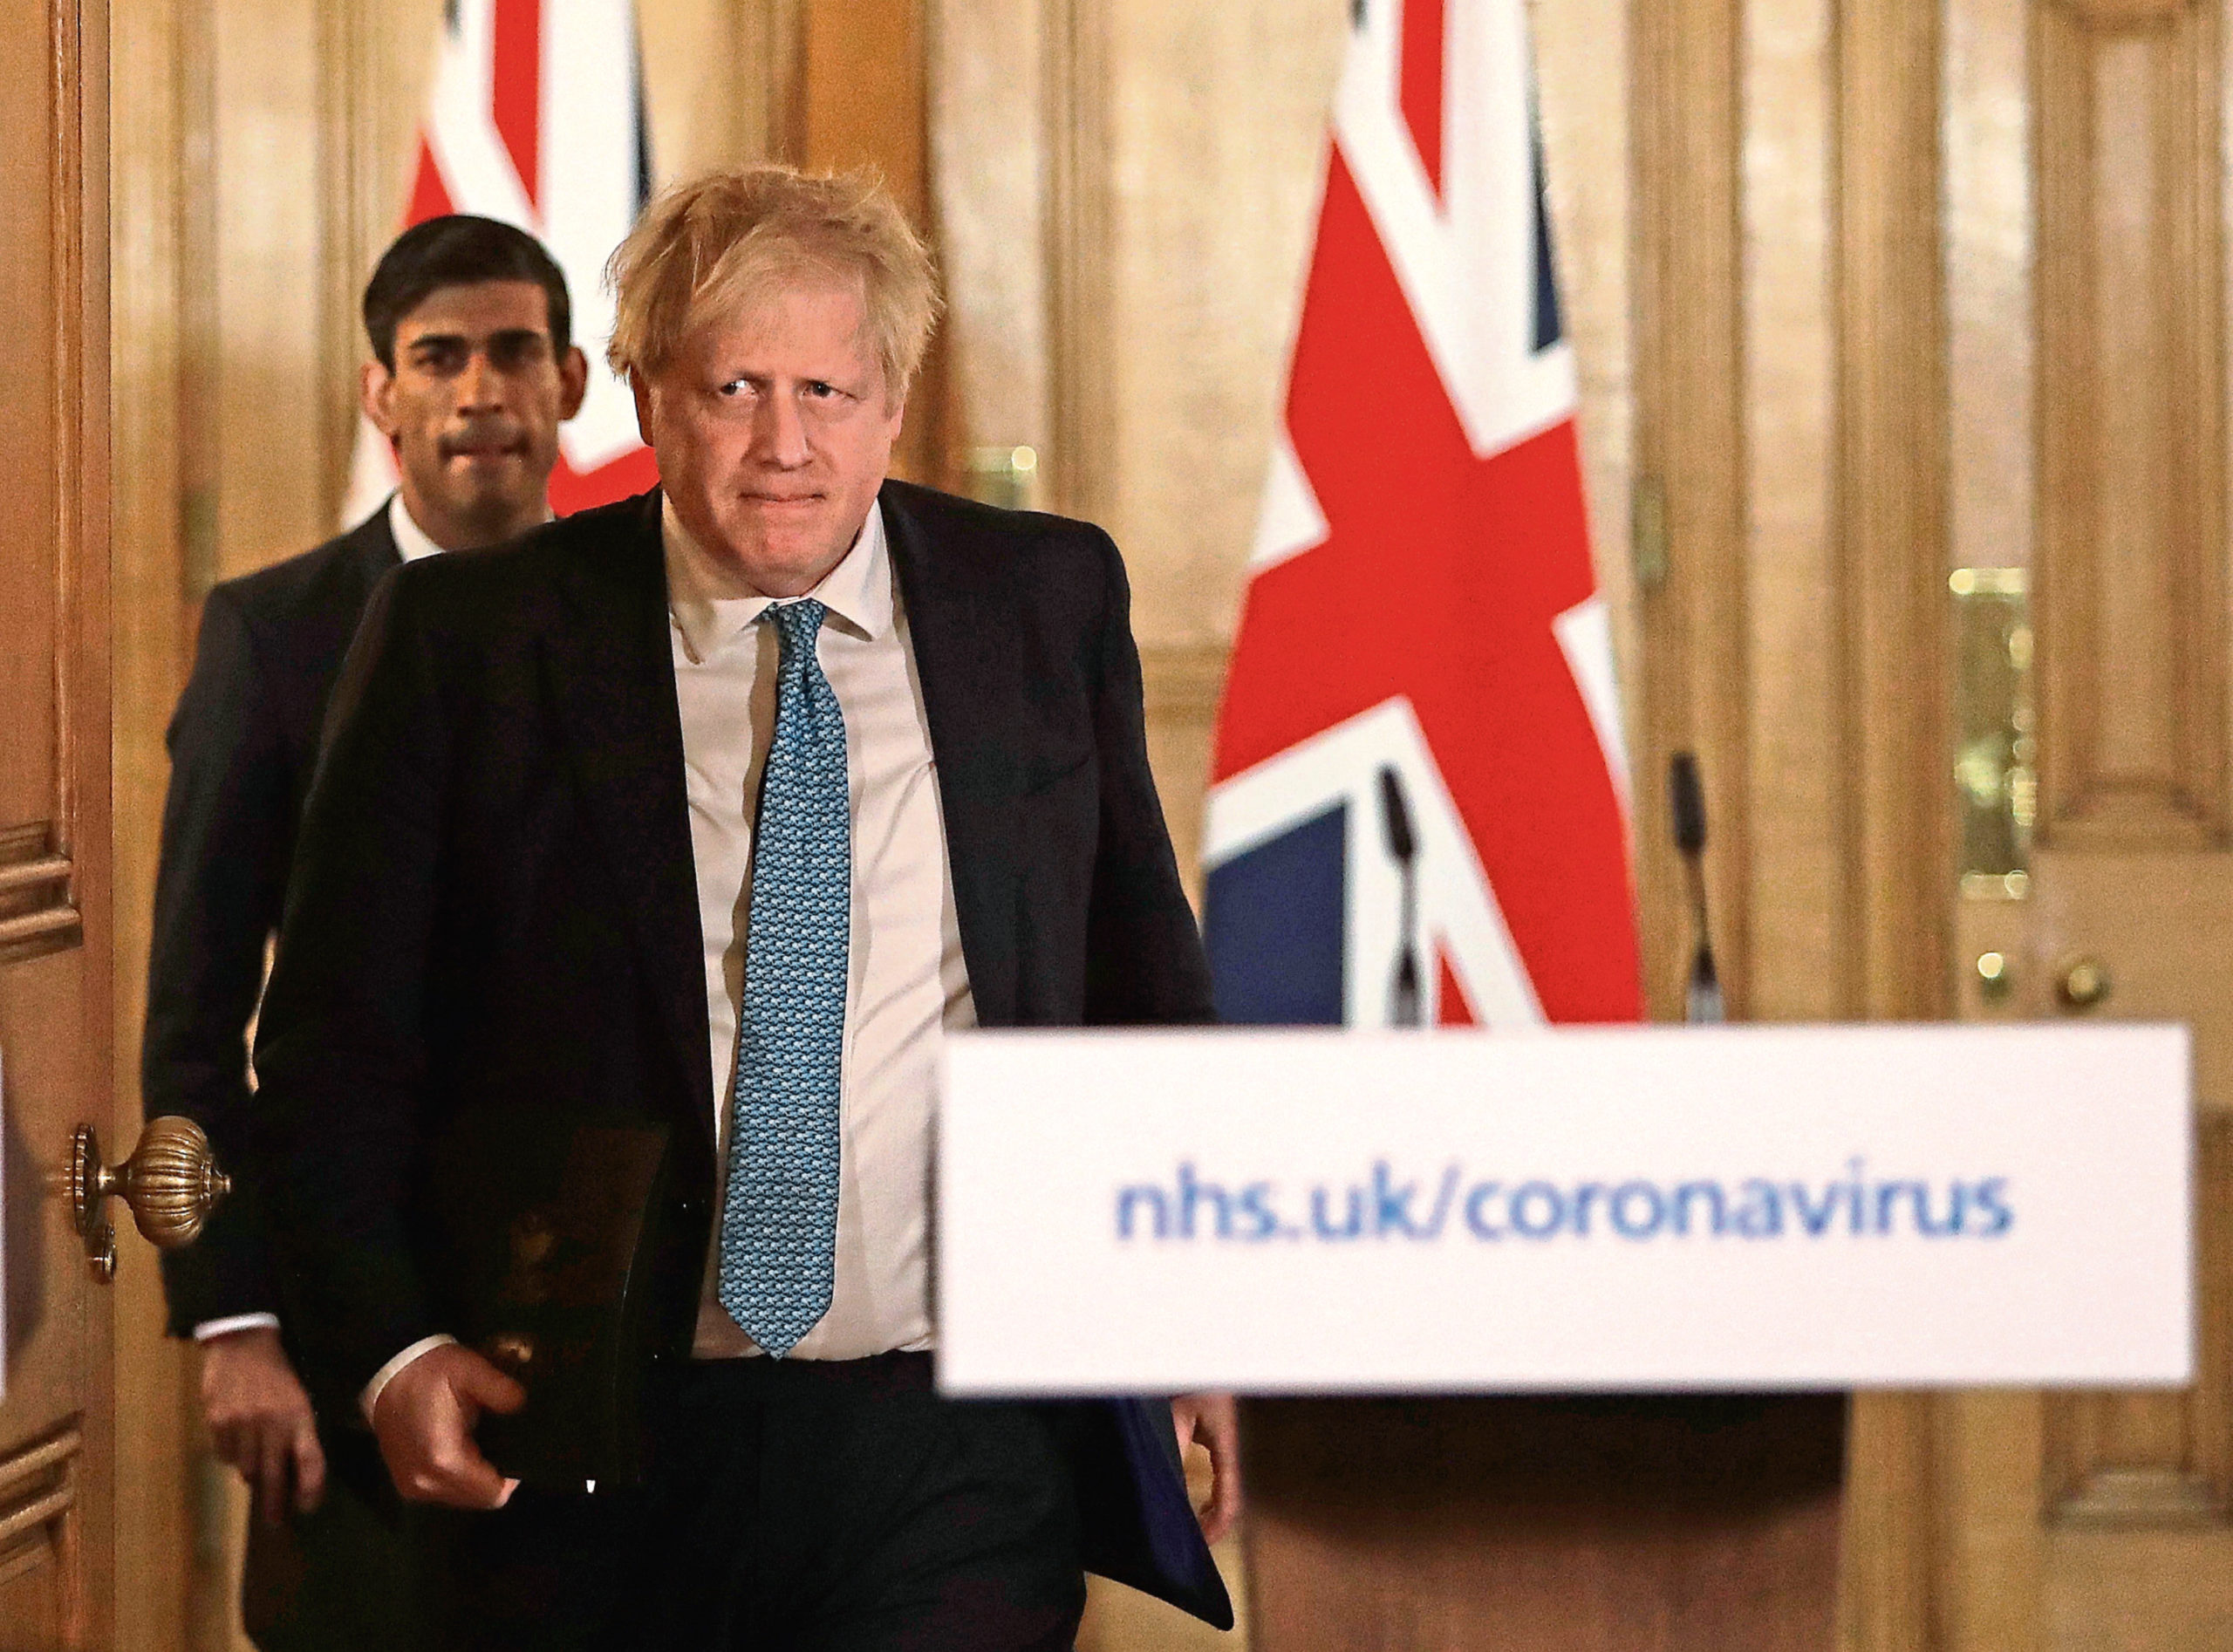 Chancellor Rishi Sunak and Prime Minister Boris Johnson